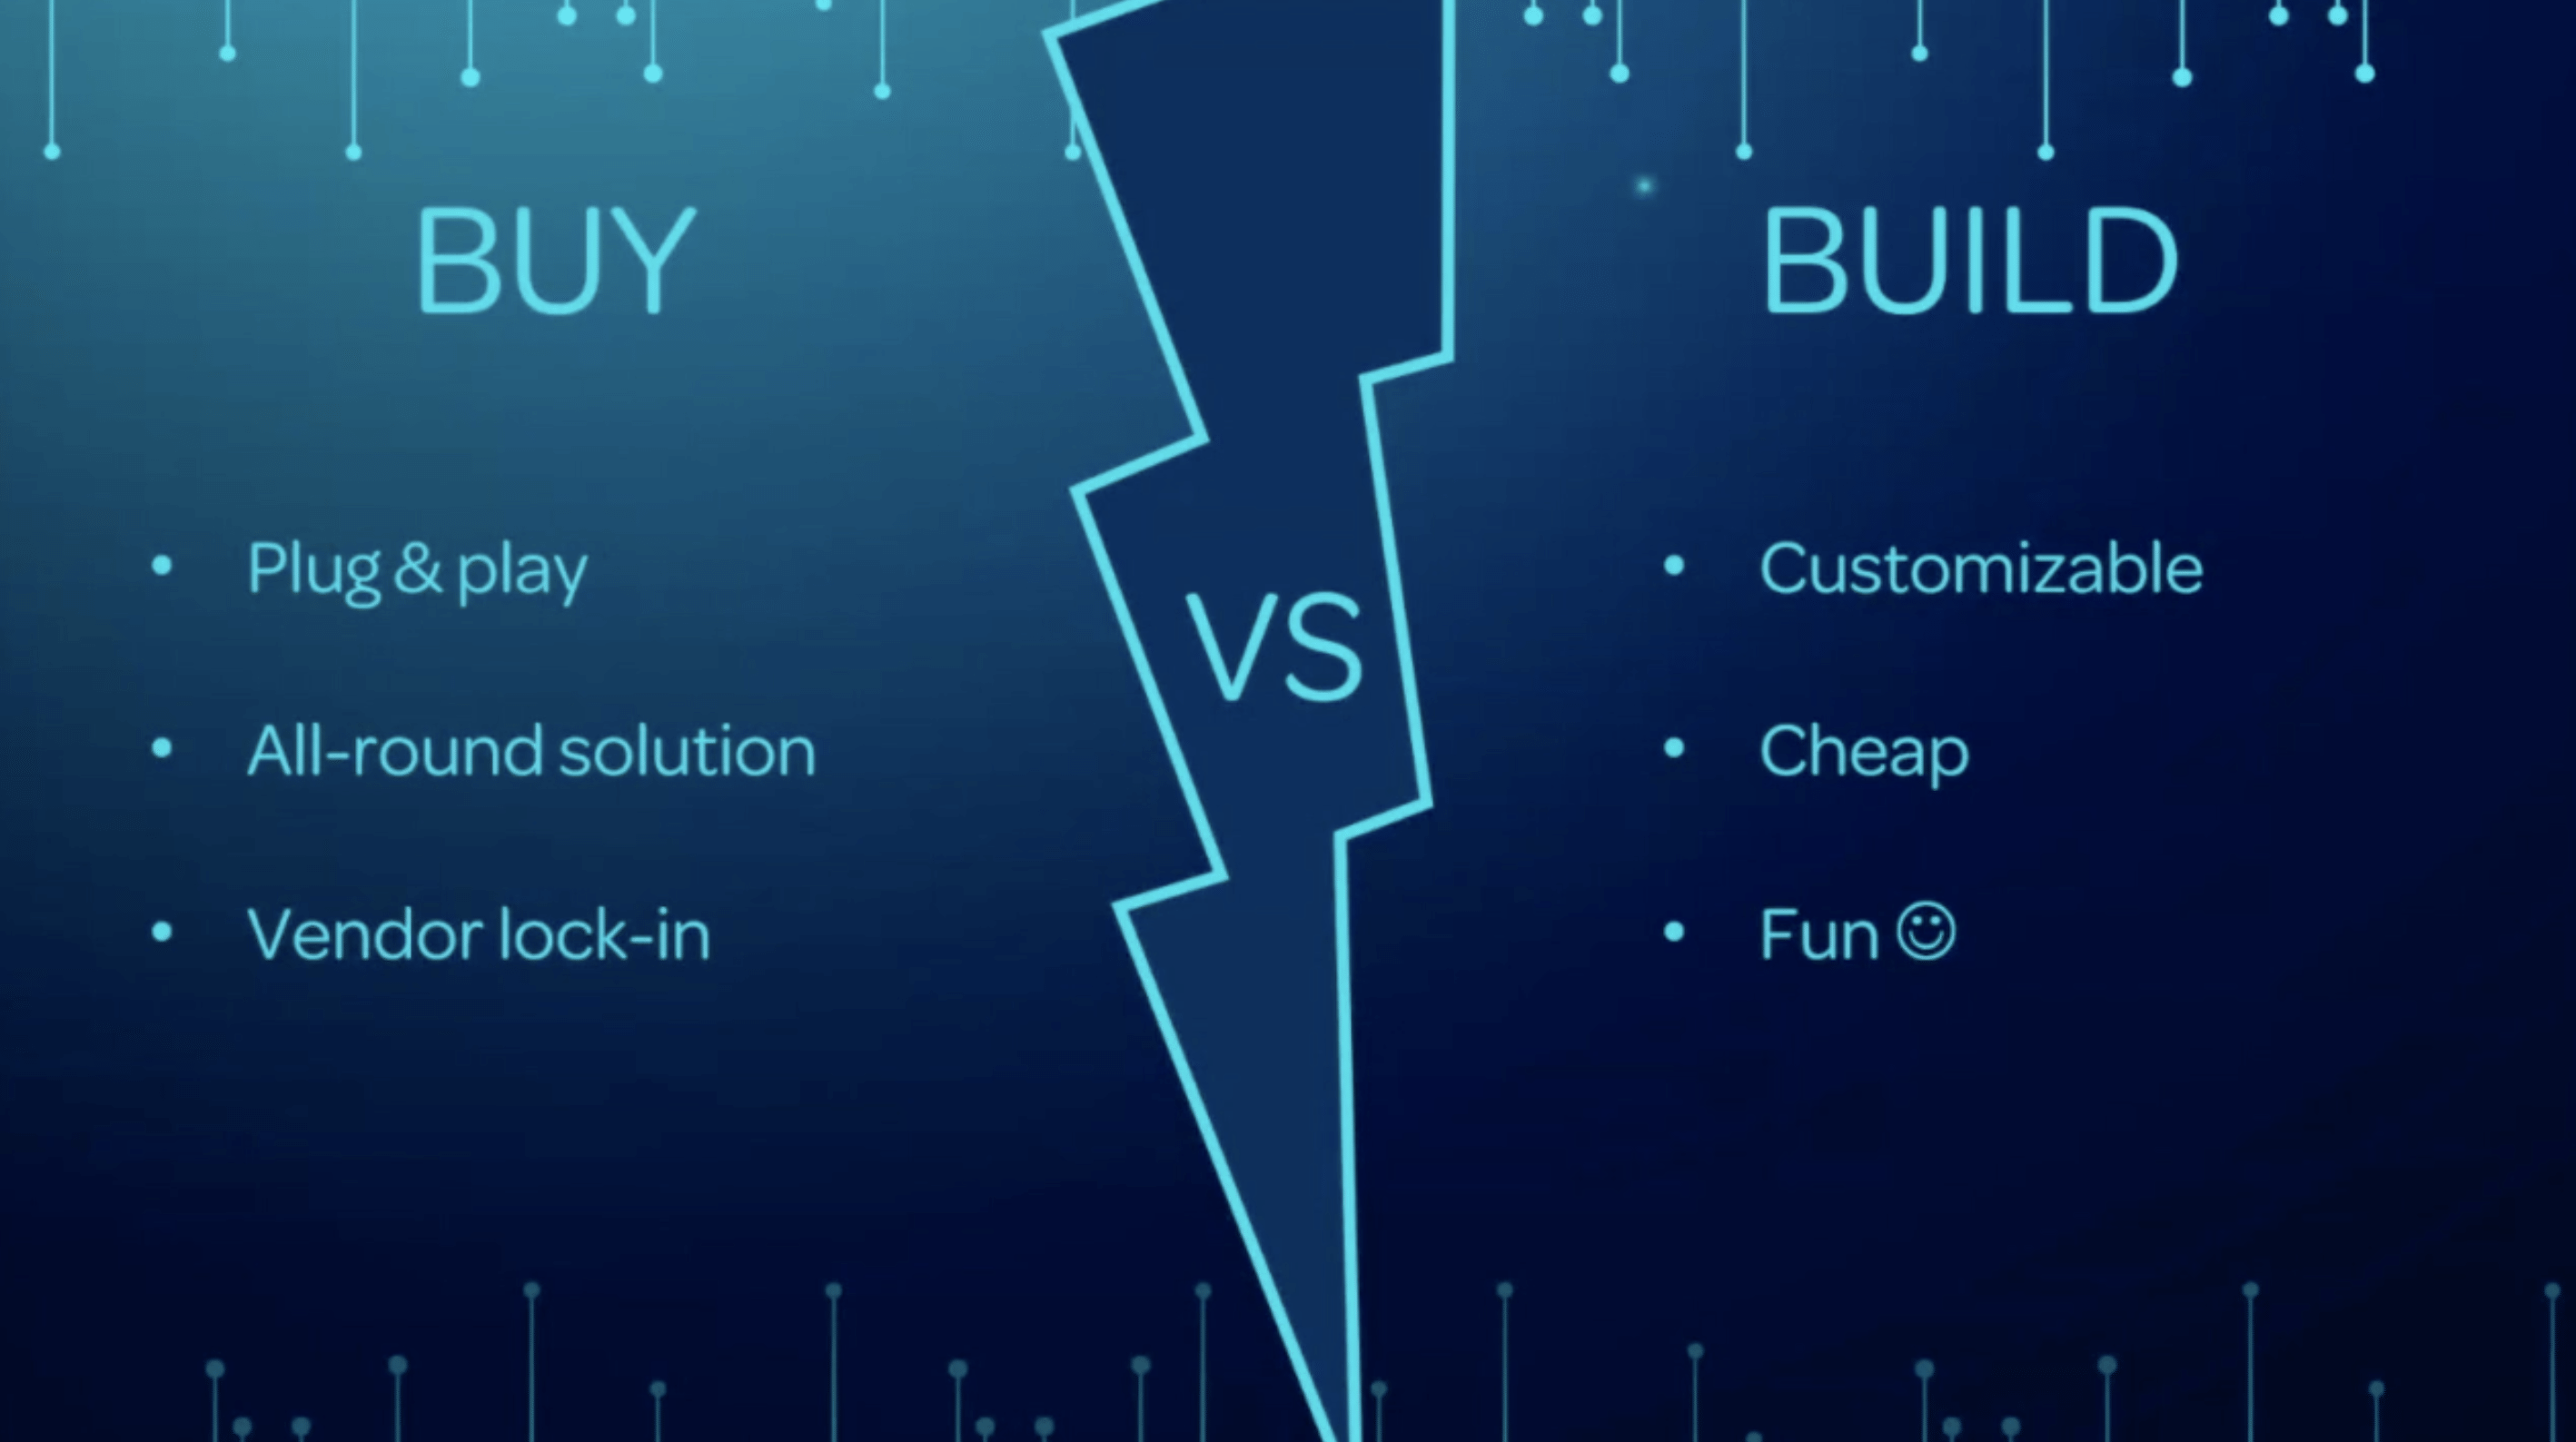 Starting out with home automation: A practical guide Buy vs build